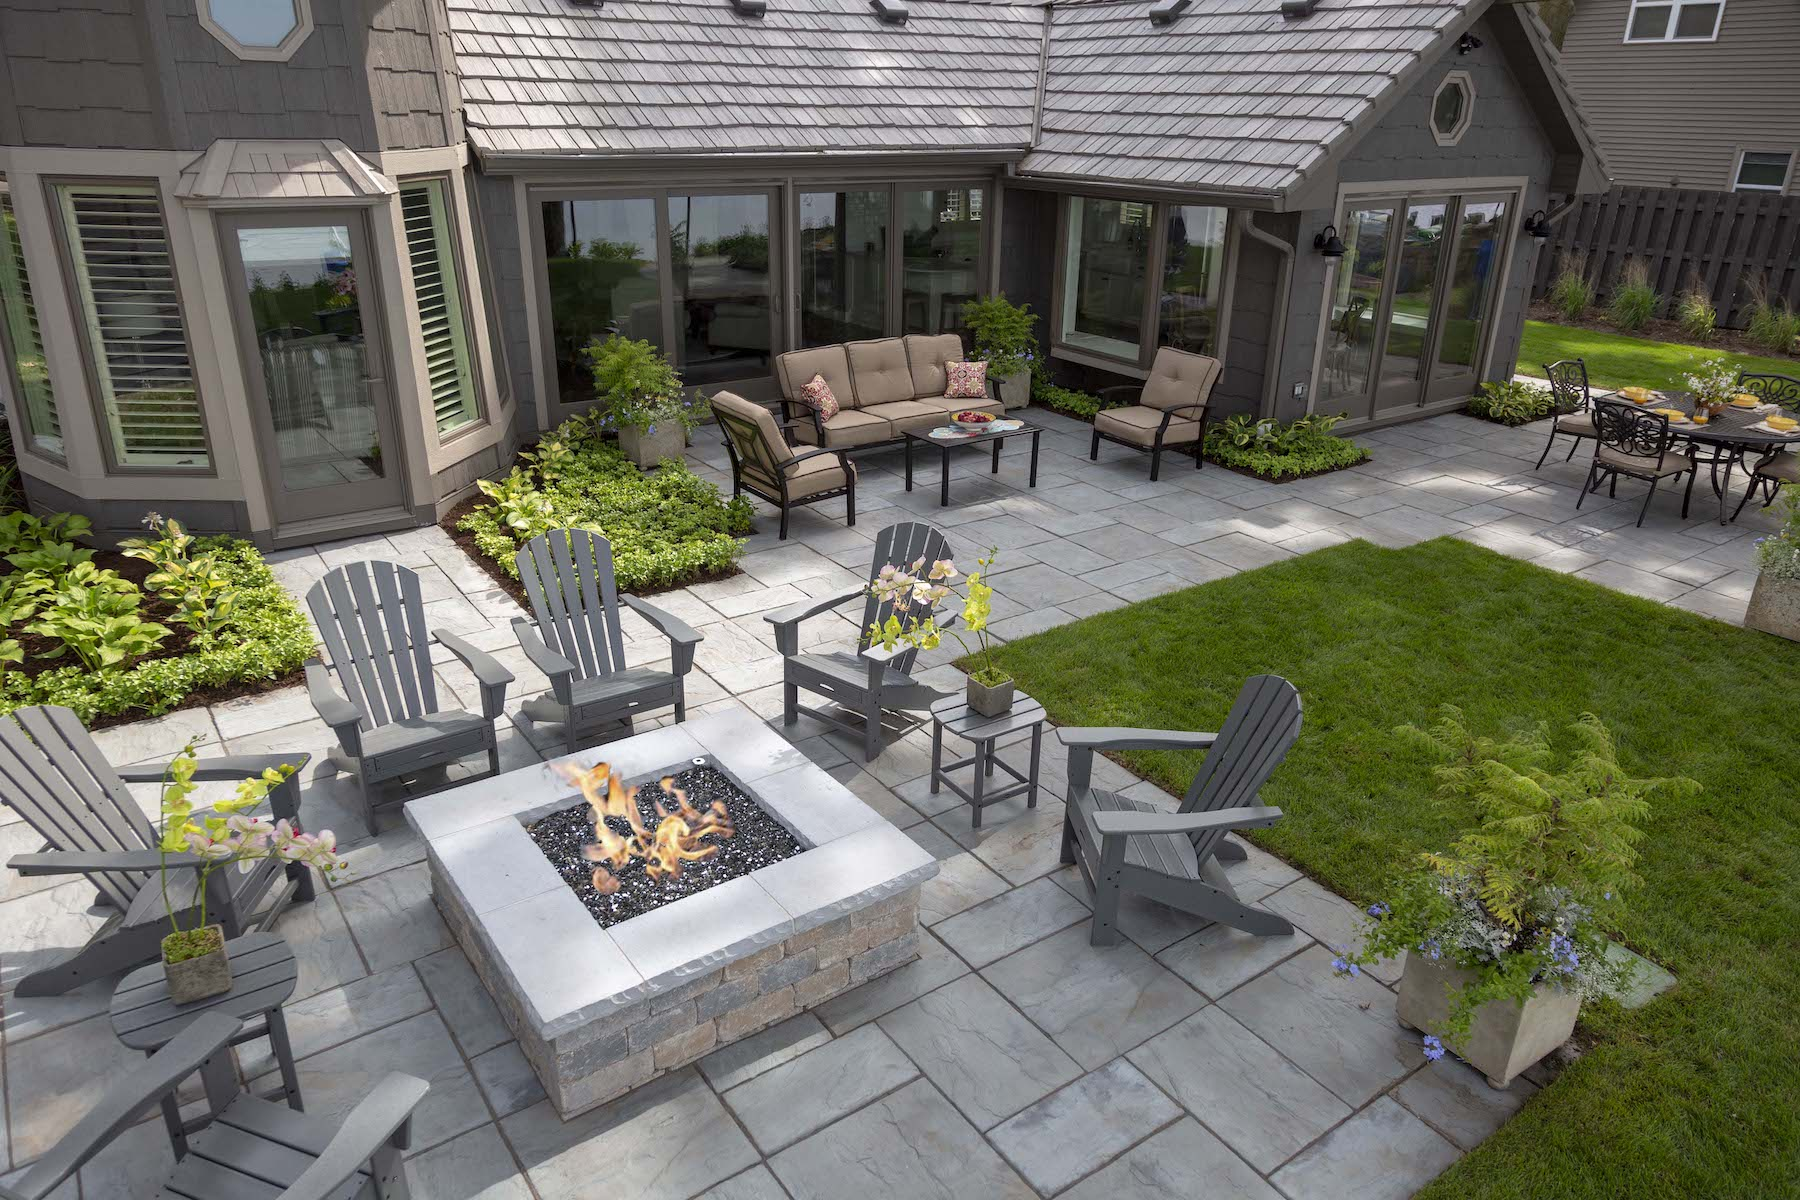 Fire pit and natural stone patio